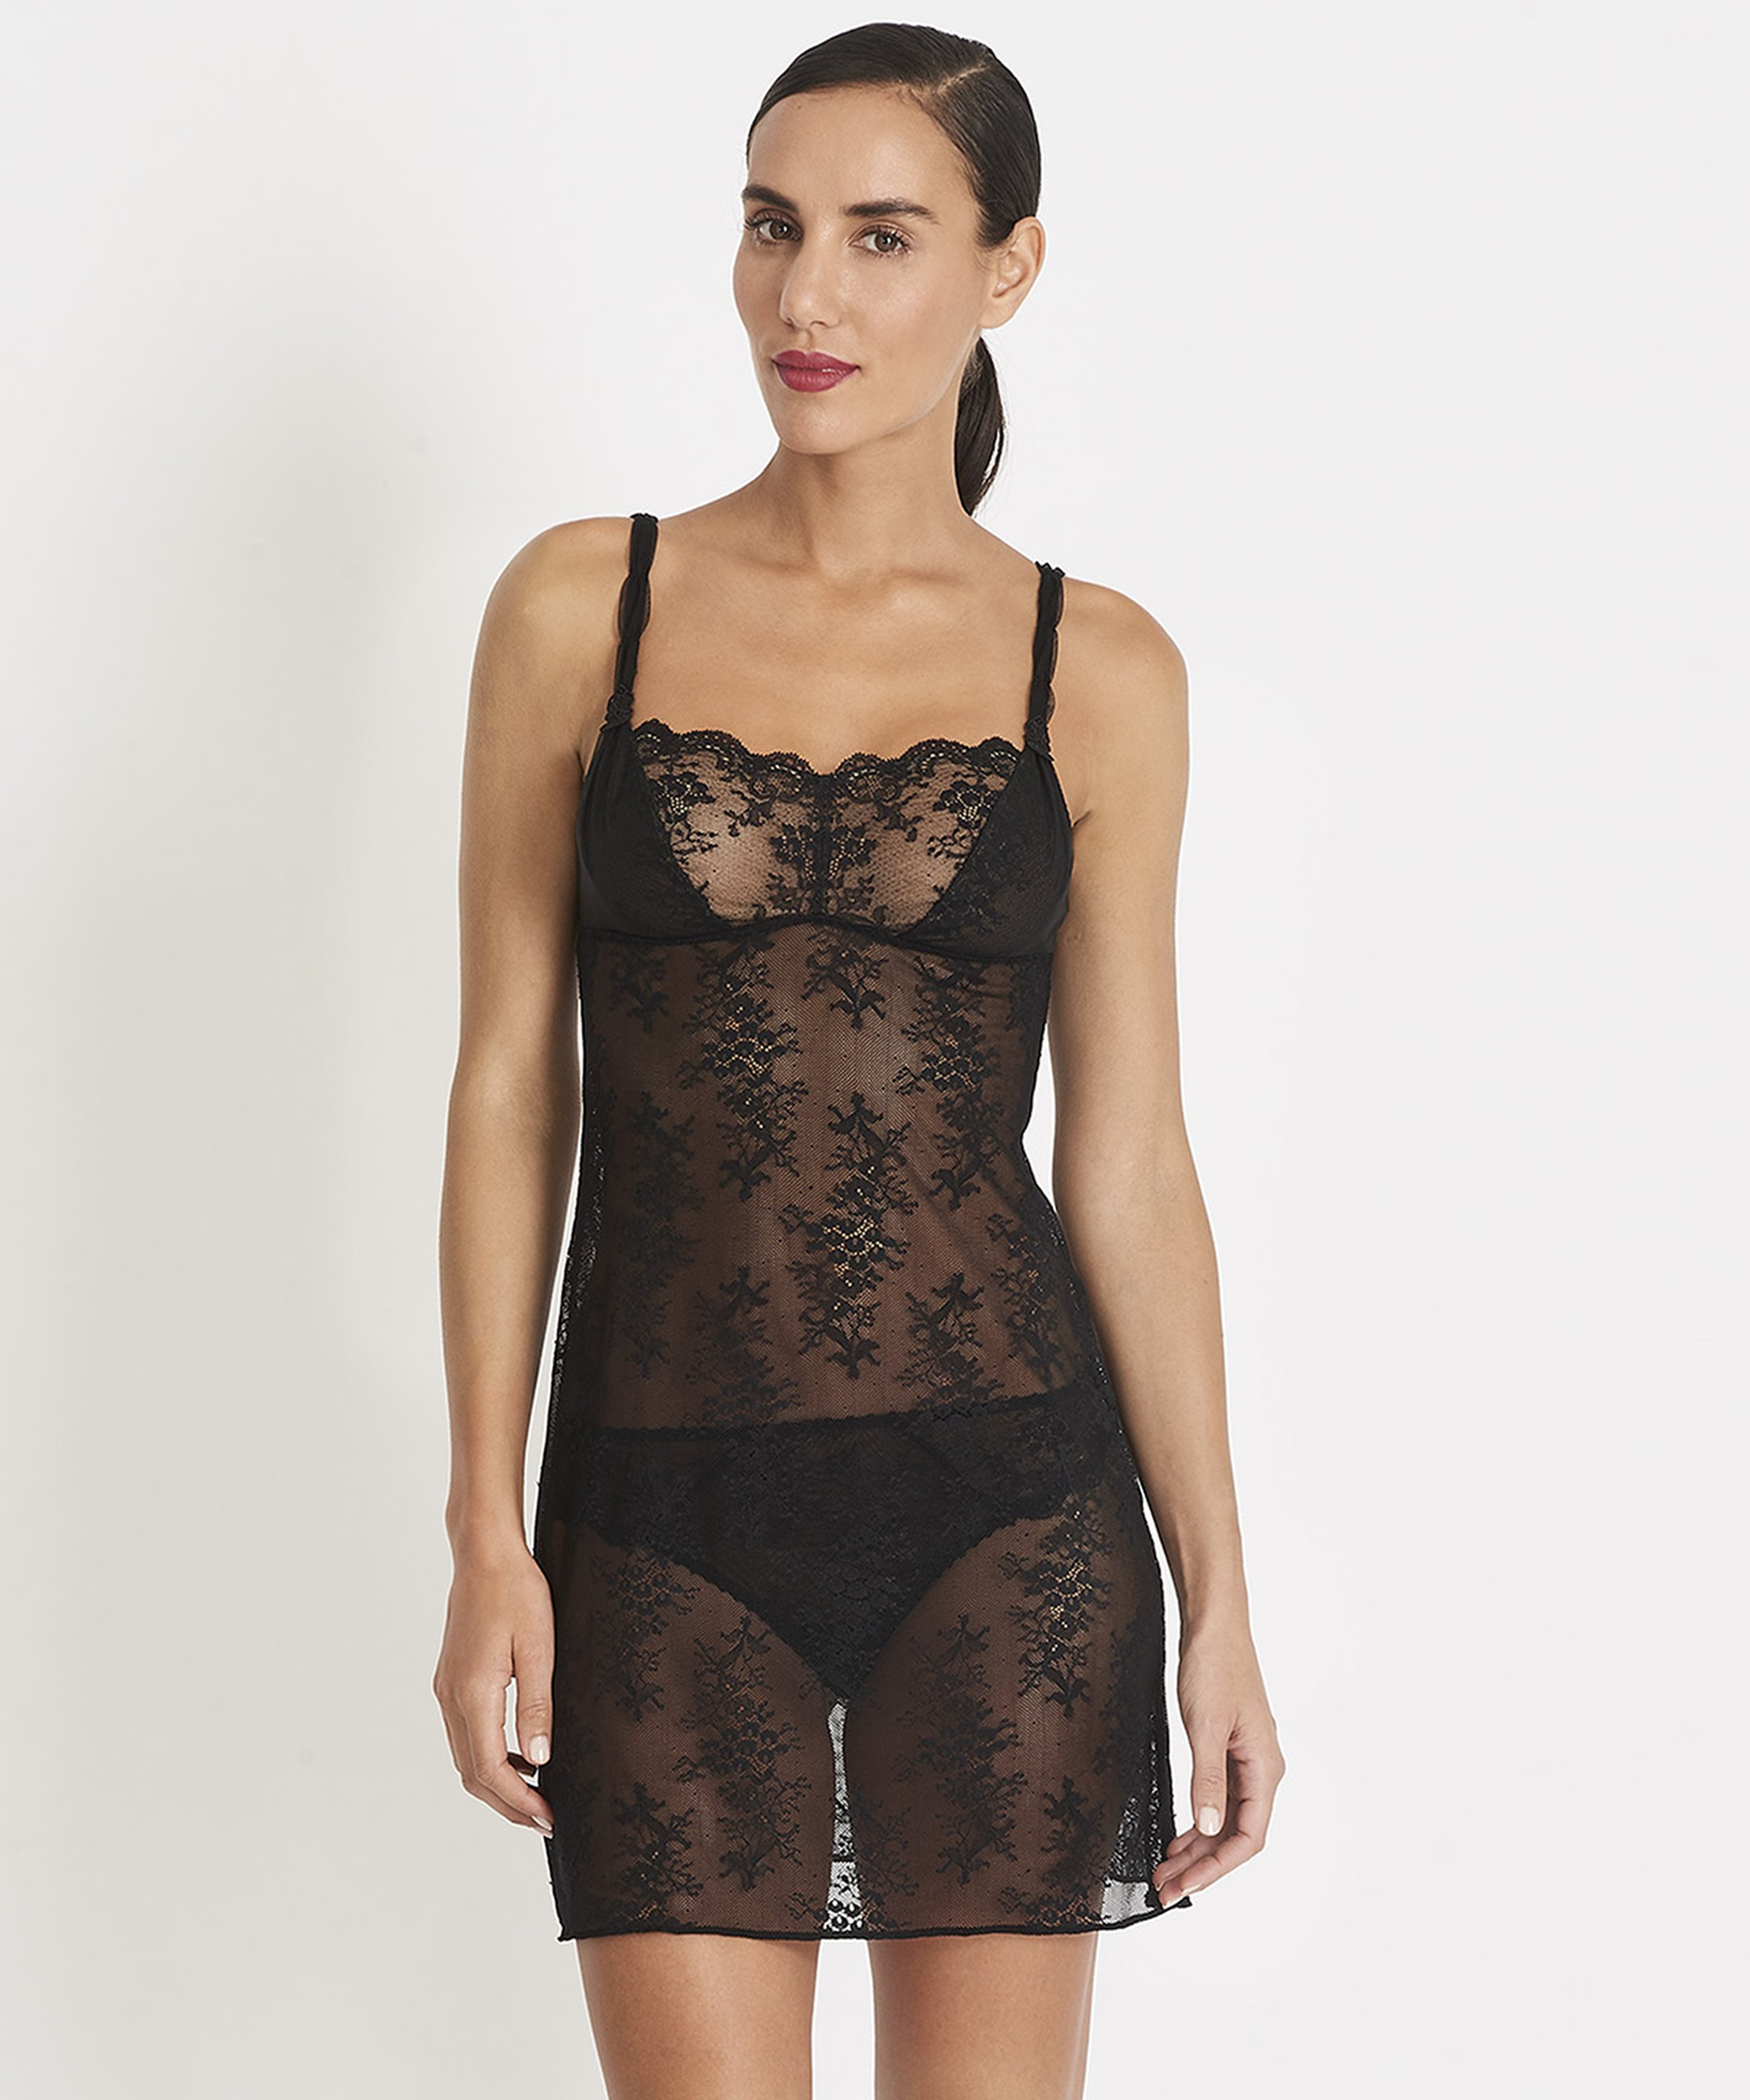 AUBADE À L'AMOUR Nightie Black | Aubade